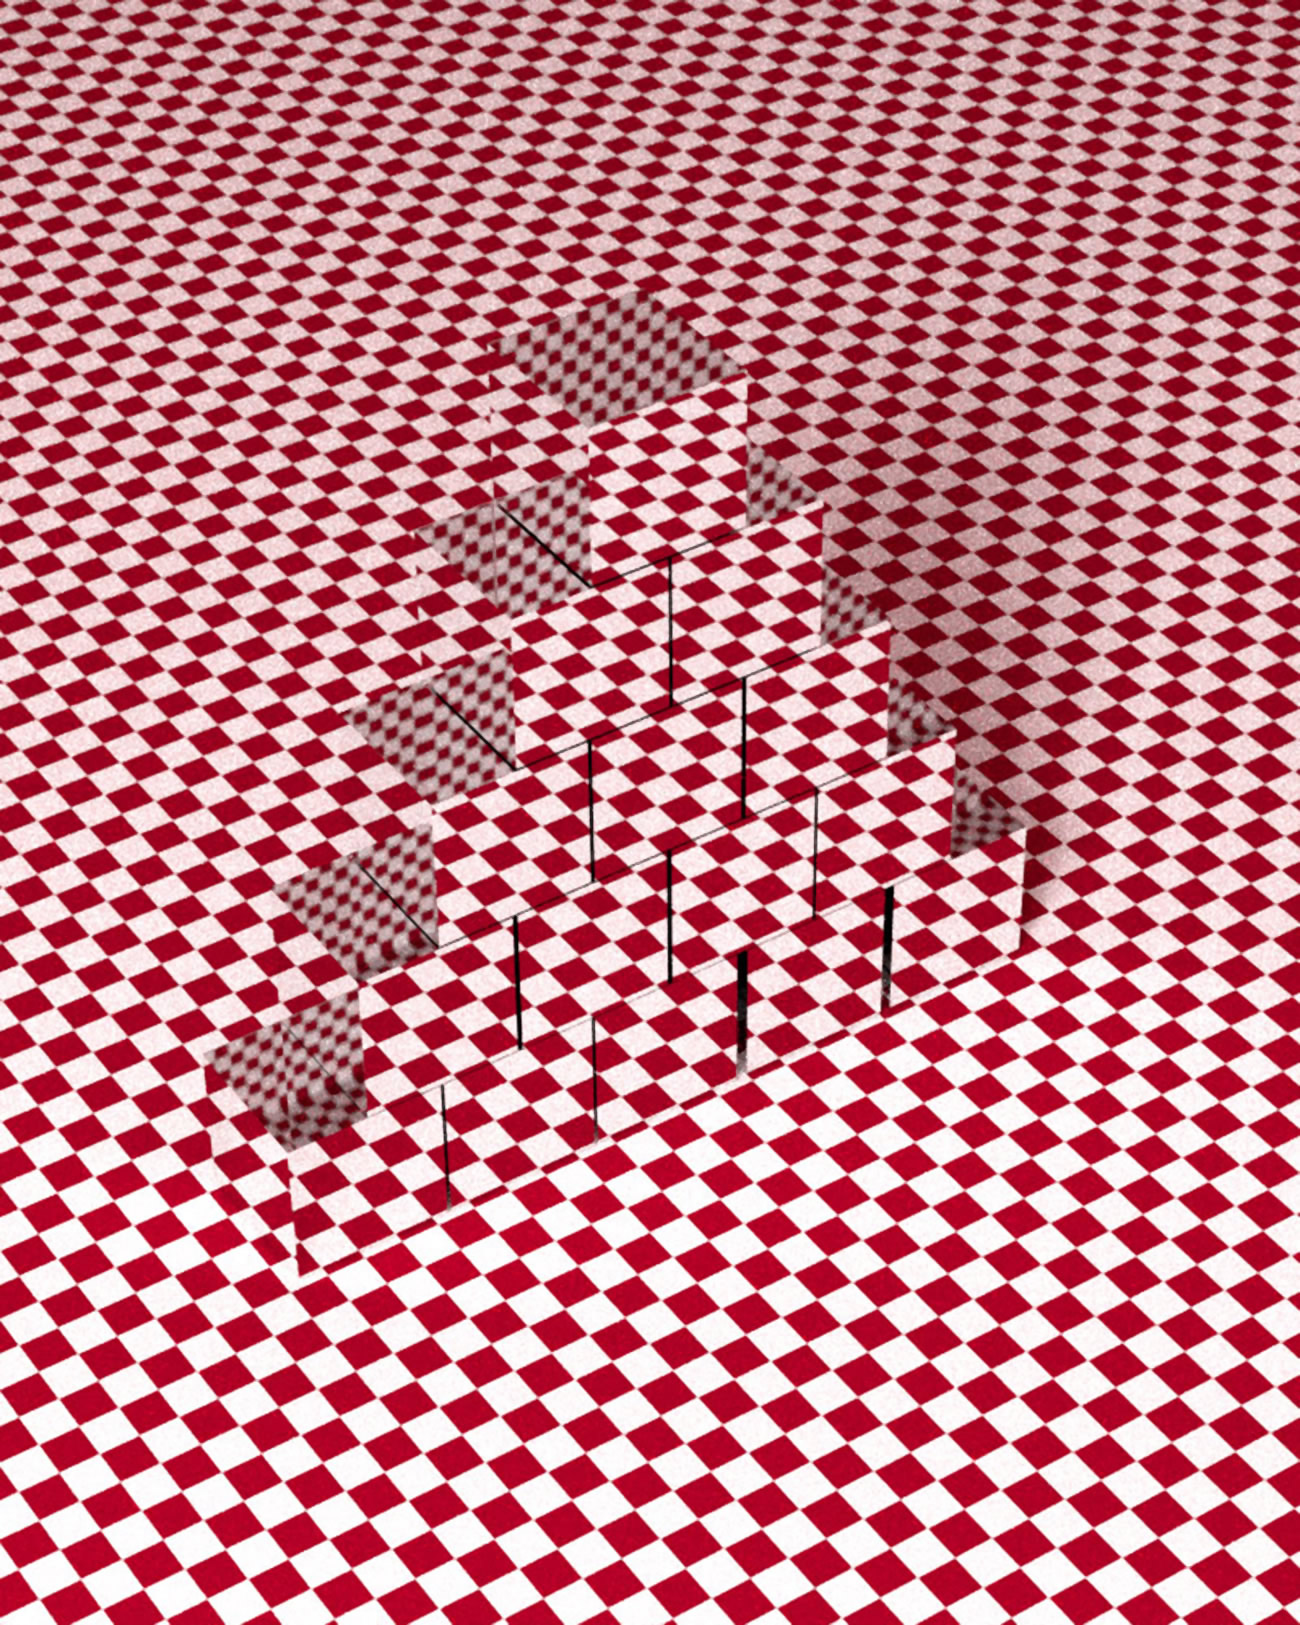 An Assortment of Visual Illusions by Zachary Norman